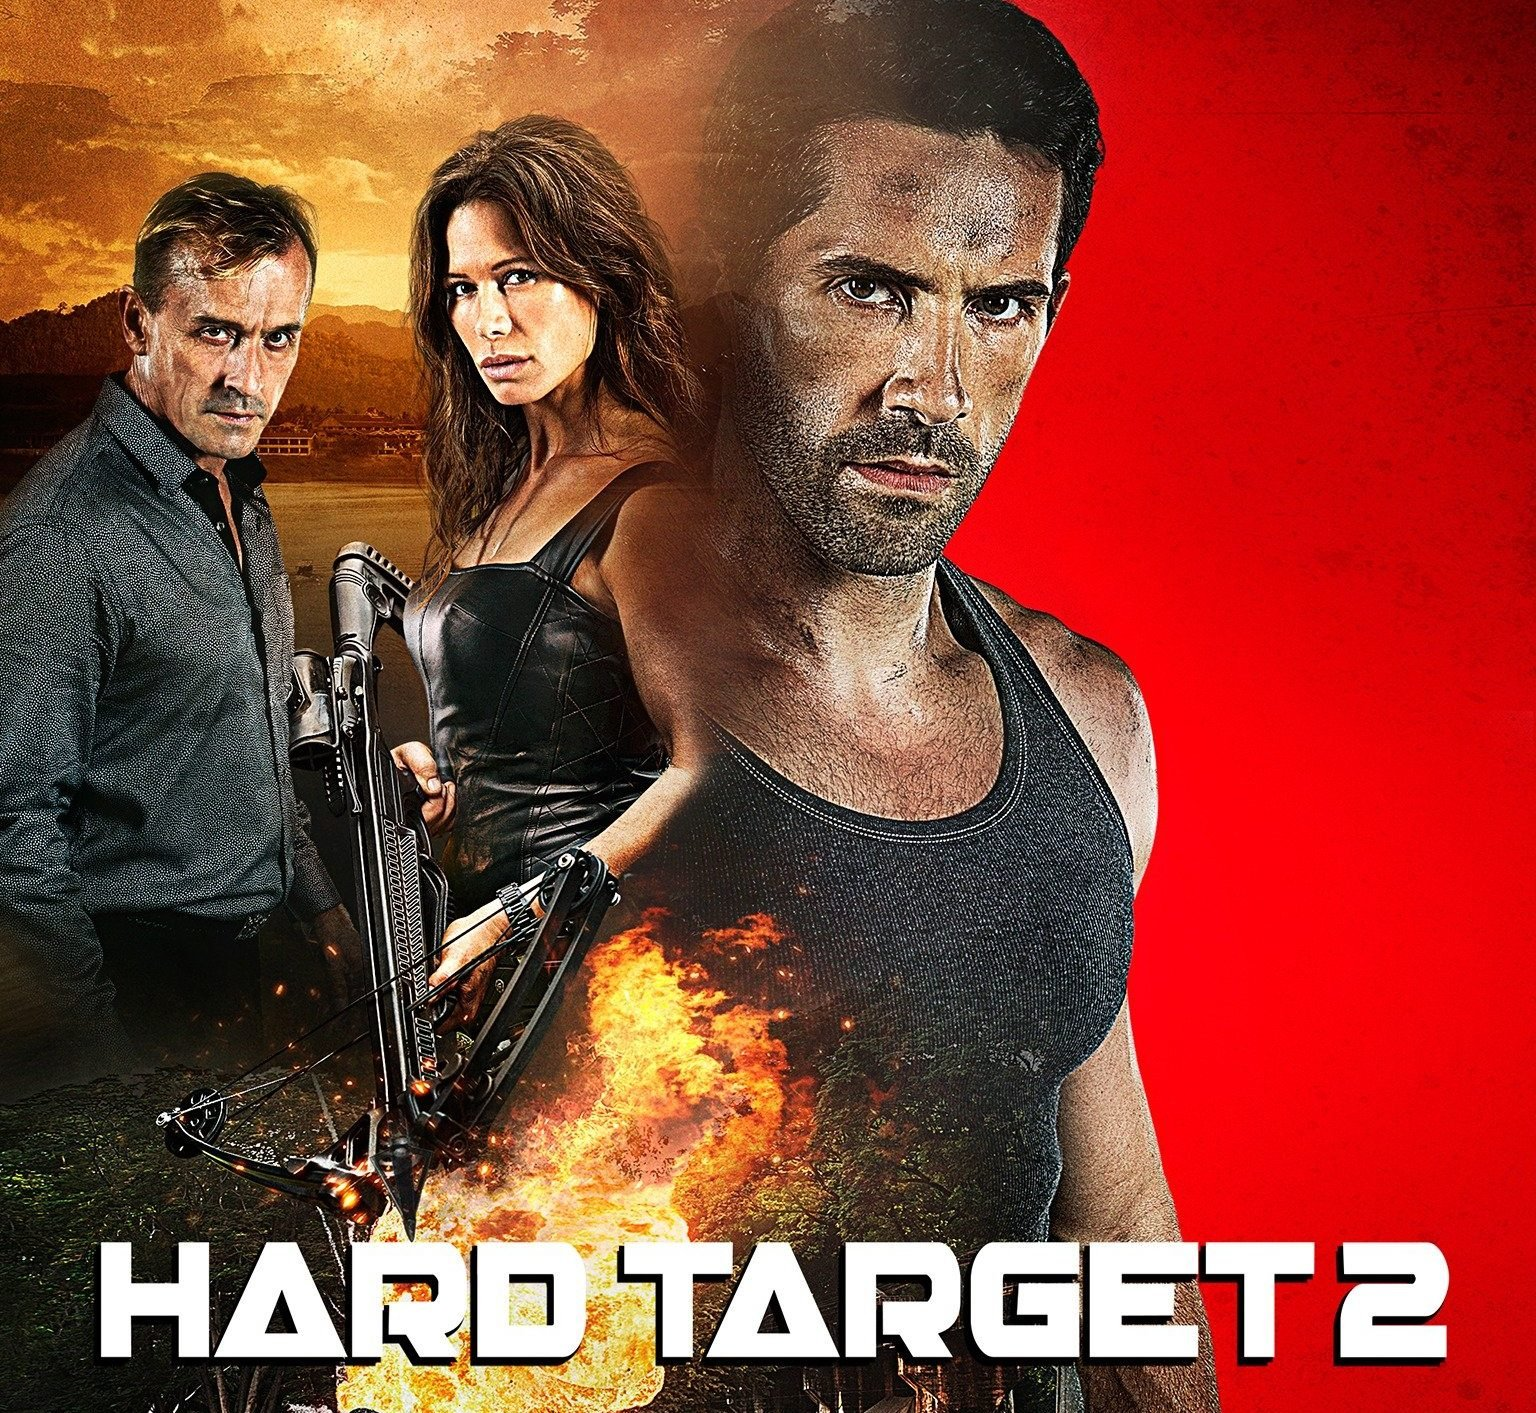 p13143875 p v10 ae e1618239185919 10 Explosive Facts About Jean-Claude Van Damme's Hard Target